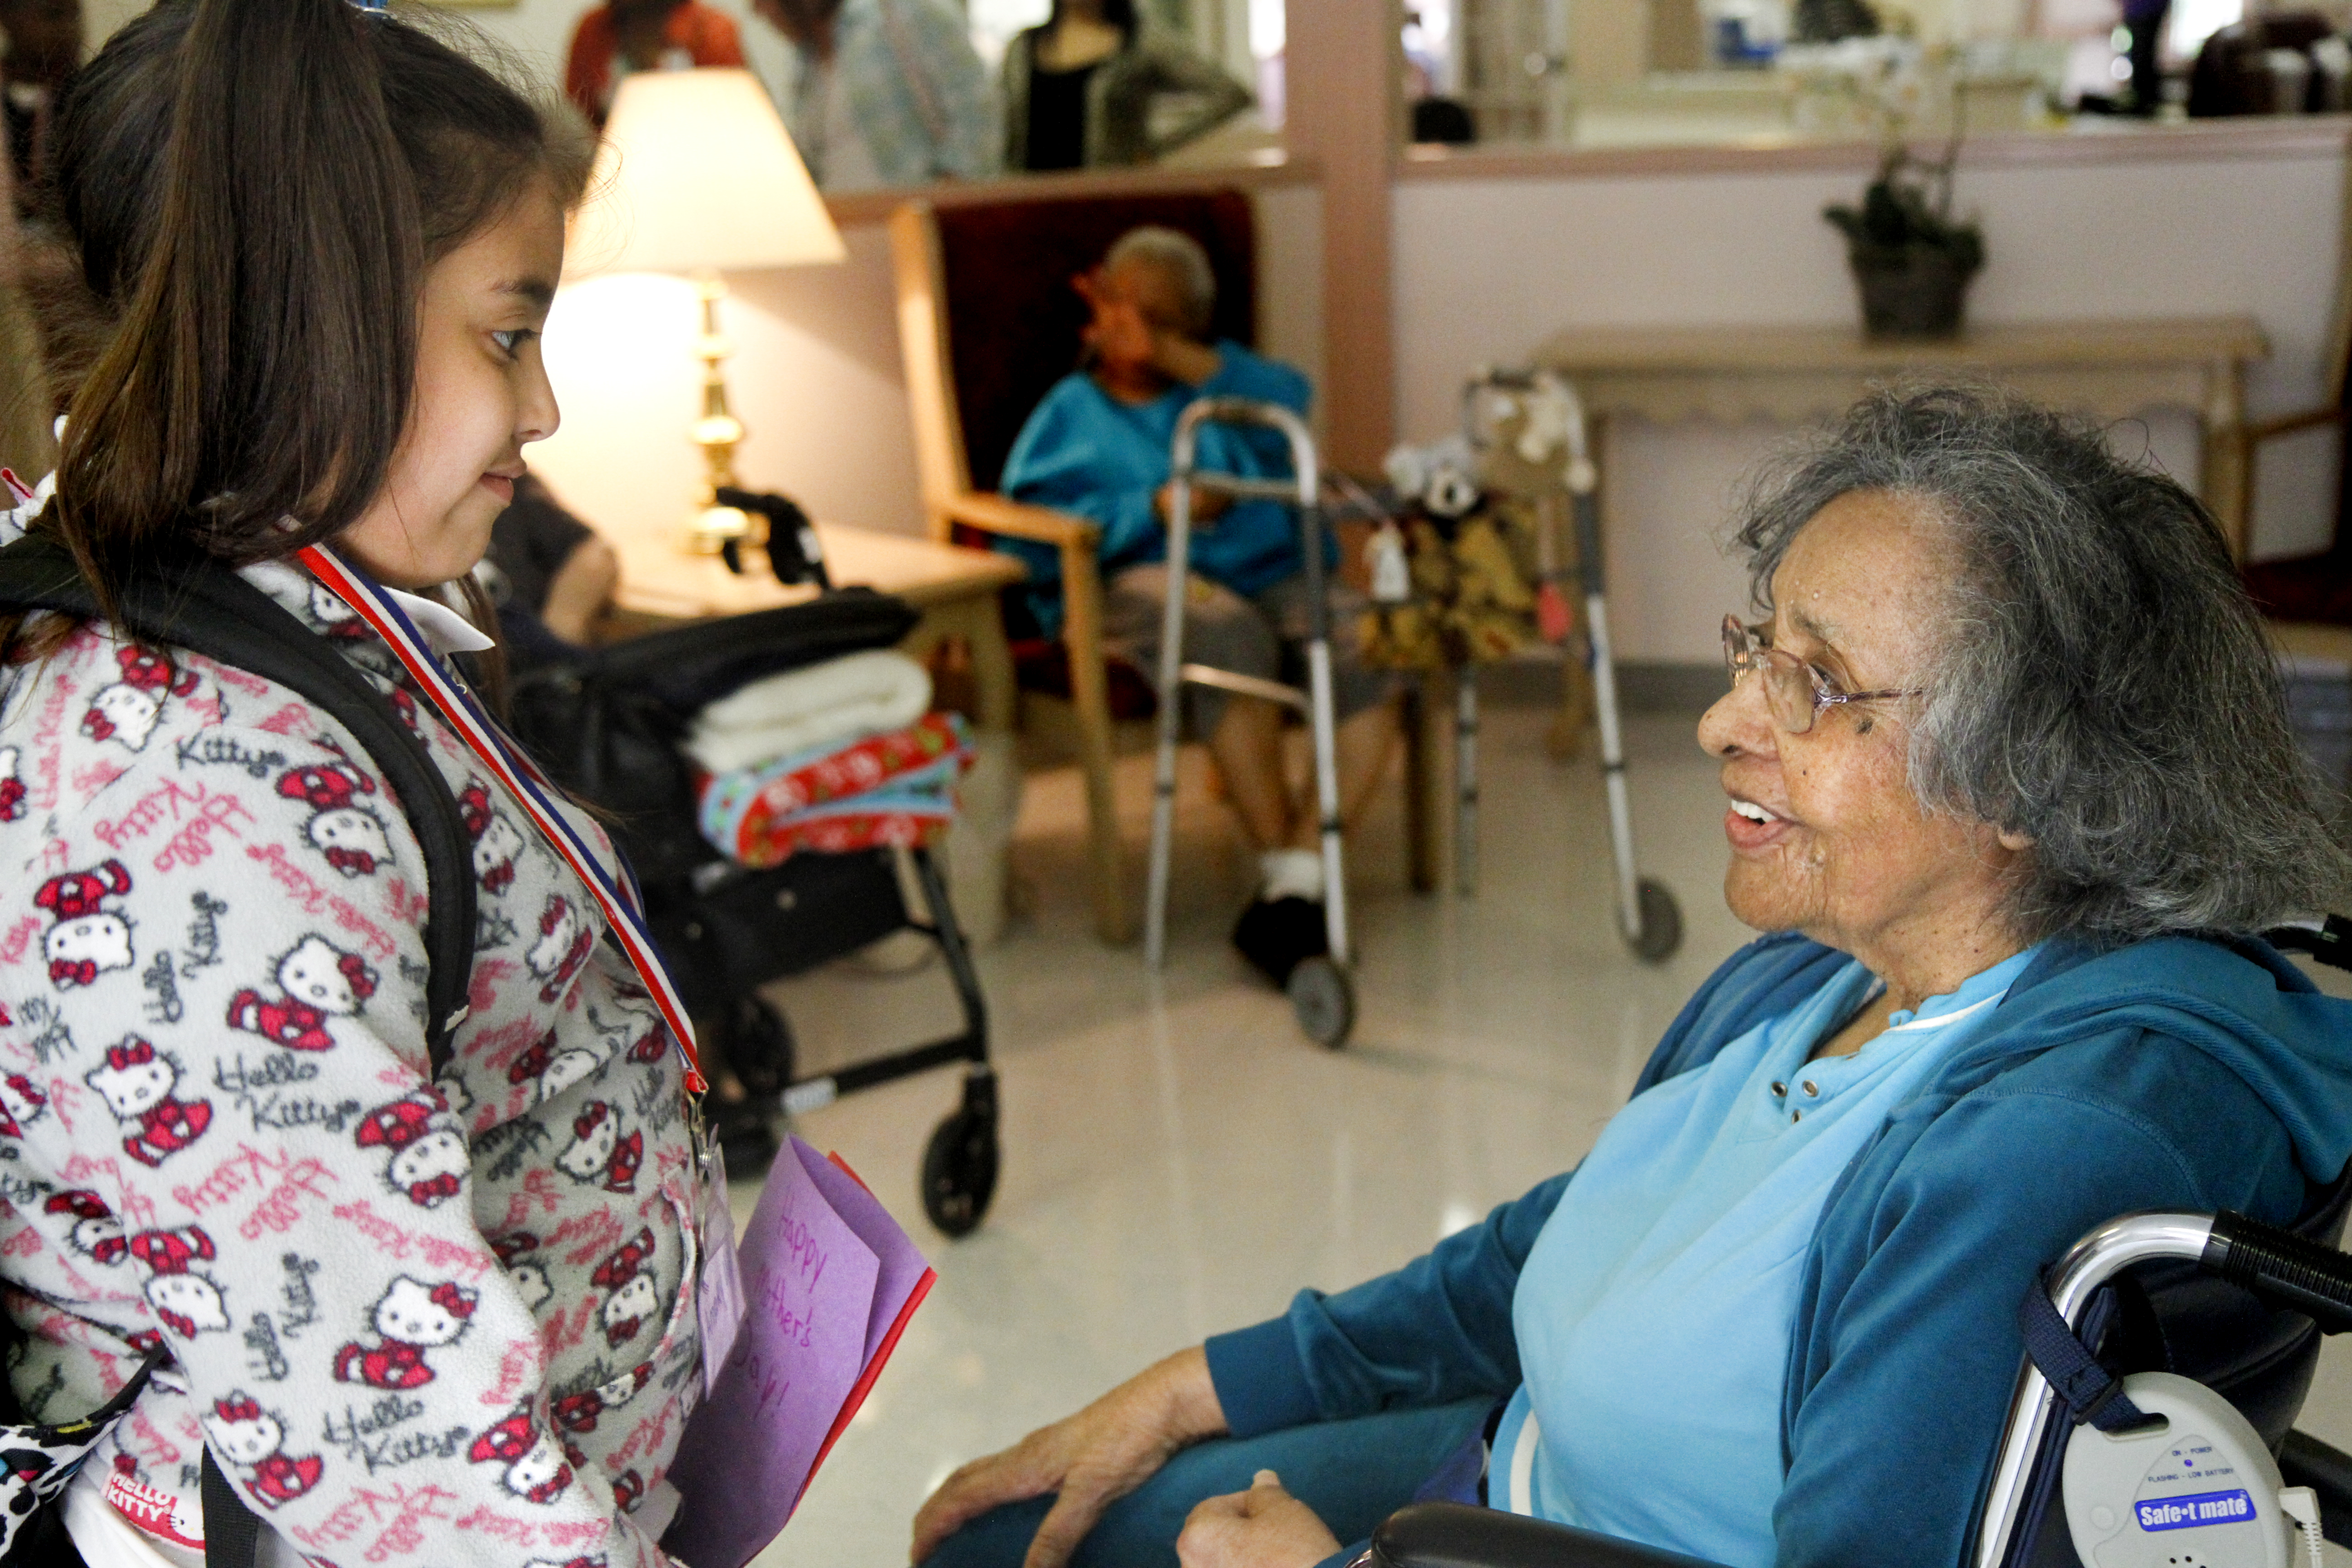 MADELYN P. HASTINGS   THE VINDICATOR   (L-R) Third grader in the afte rschool program at Martin Luther King Elementary, Amaryllis Rivera, gives a Mother's Day card to Metlean Singleton, resident at Danridge Nursing Home in Youngstown. The kids involved with the after school program presented the ladies of Danridge Mother's Day cards, songs and poems.